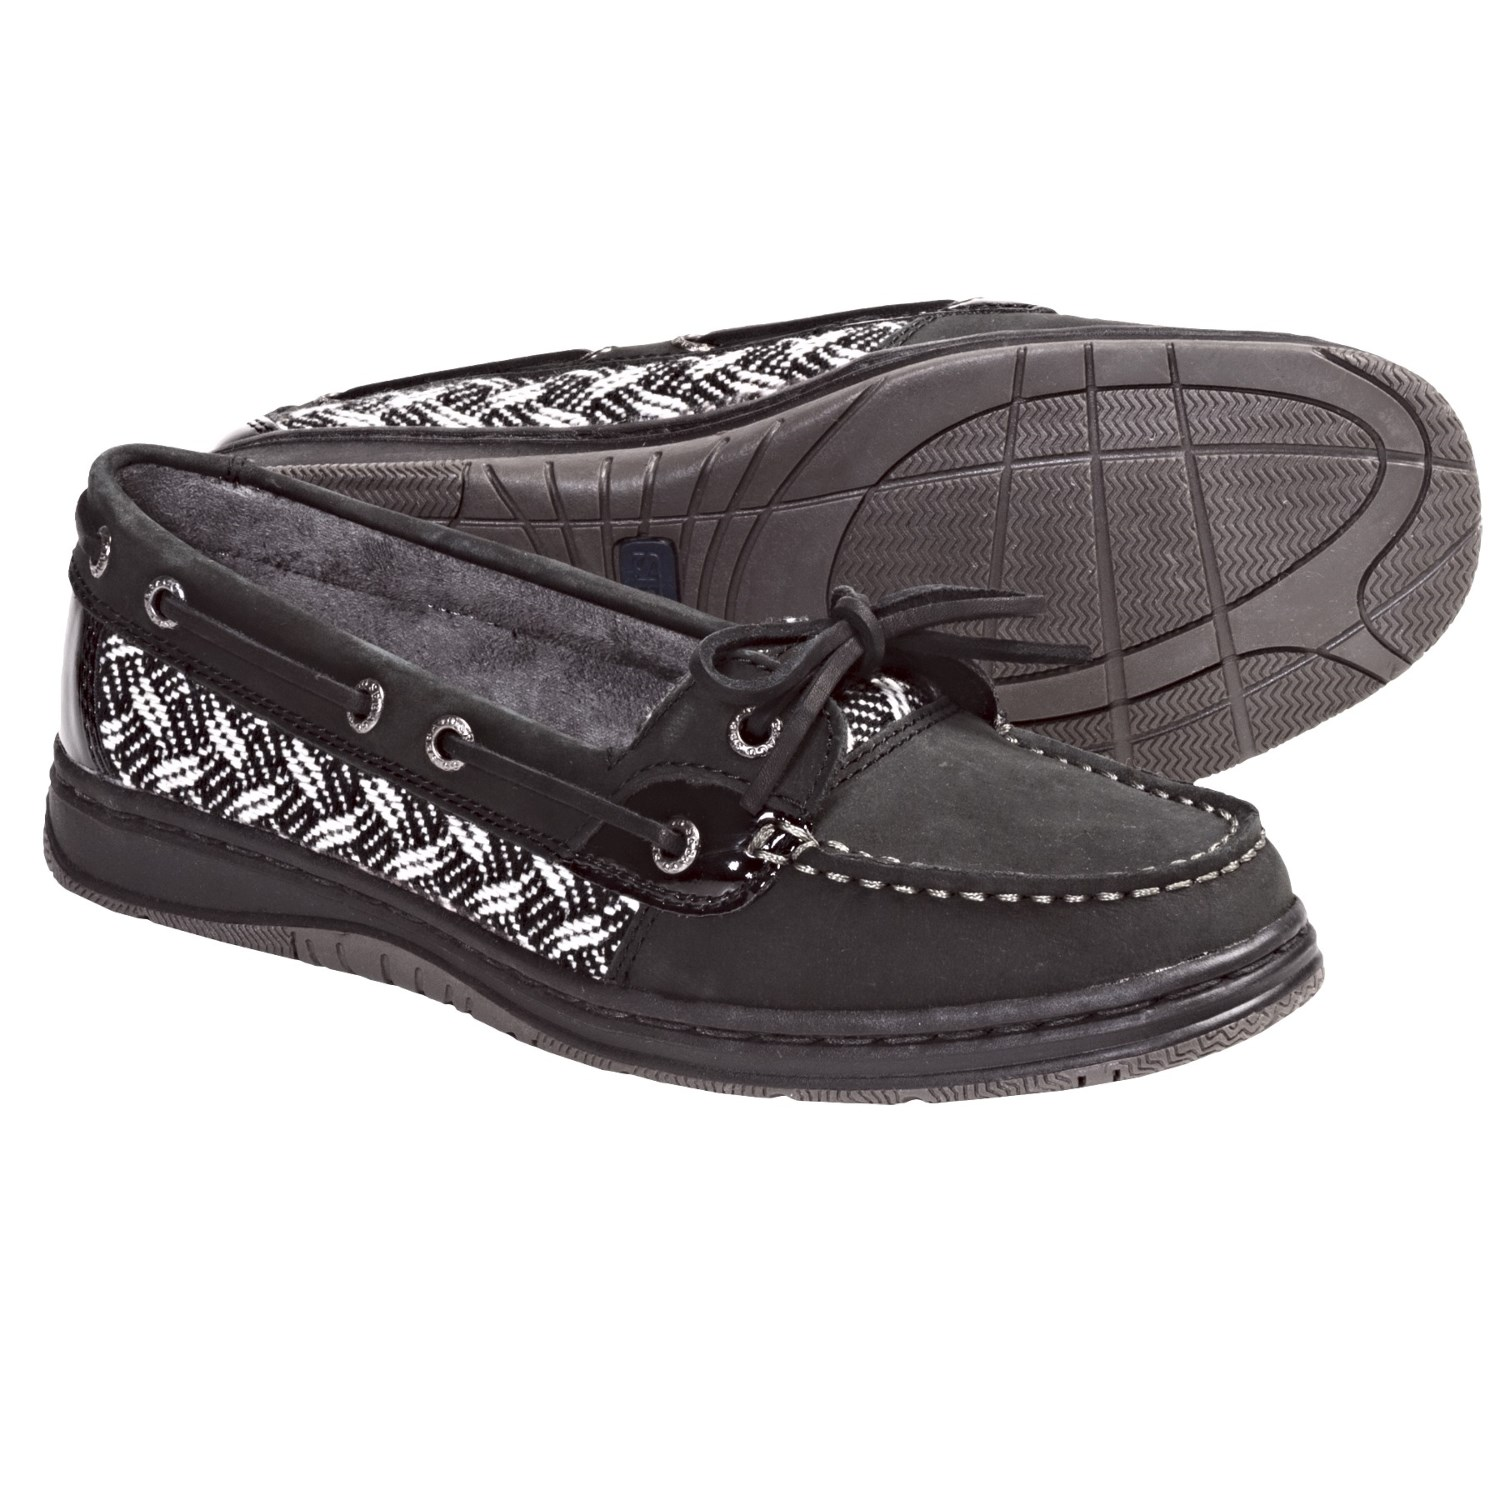 Sebago Sands One-Eye Boat Shoes -Leather (For Women) in Black